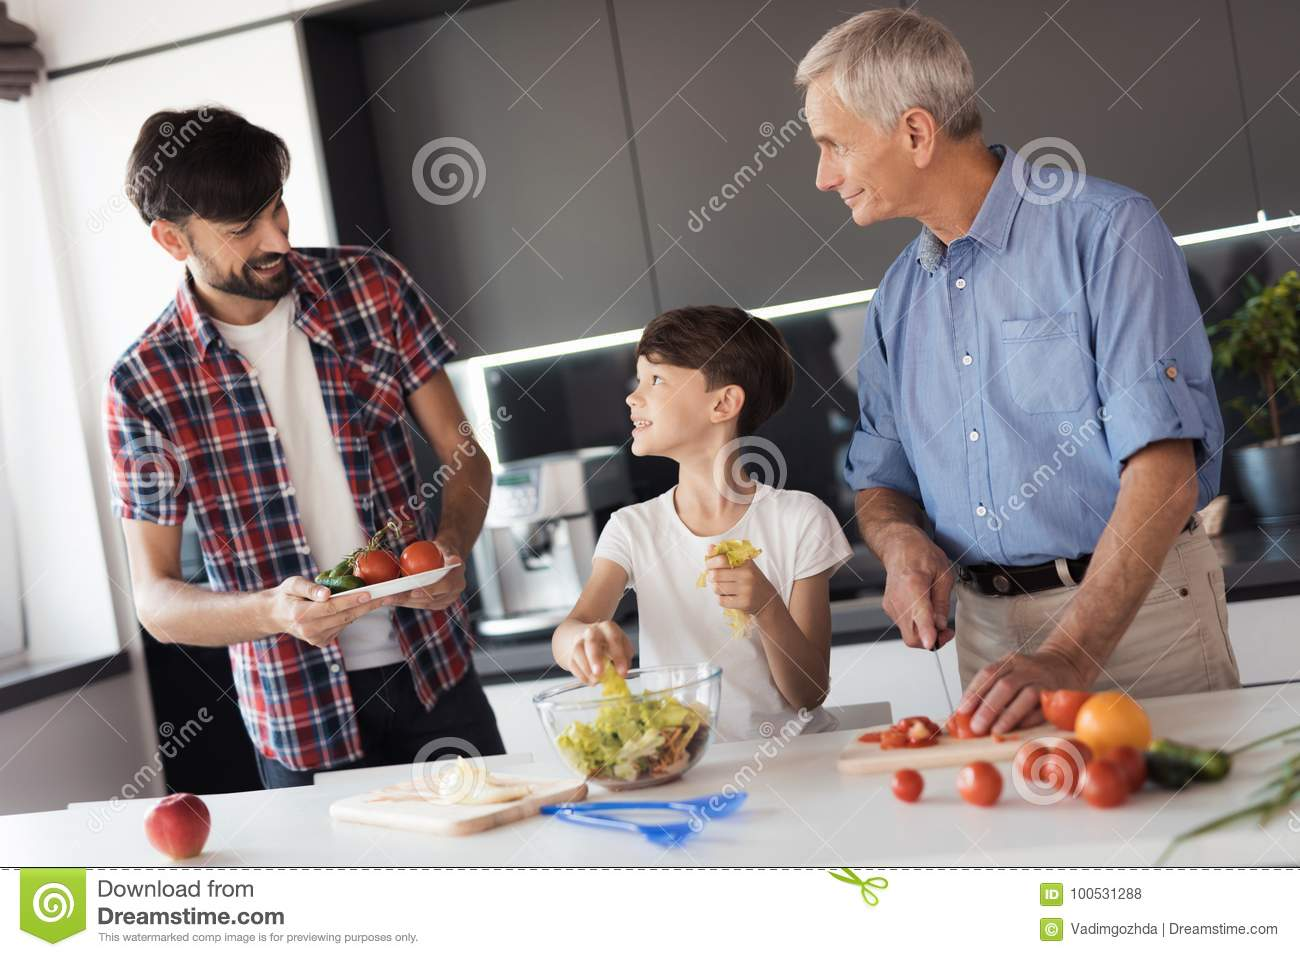 The boy is preparing a salad for dinner on Thanksgiving Day with his father and grandfather